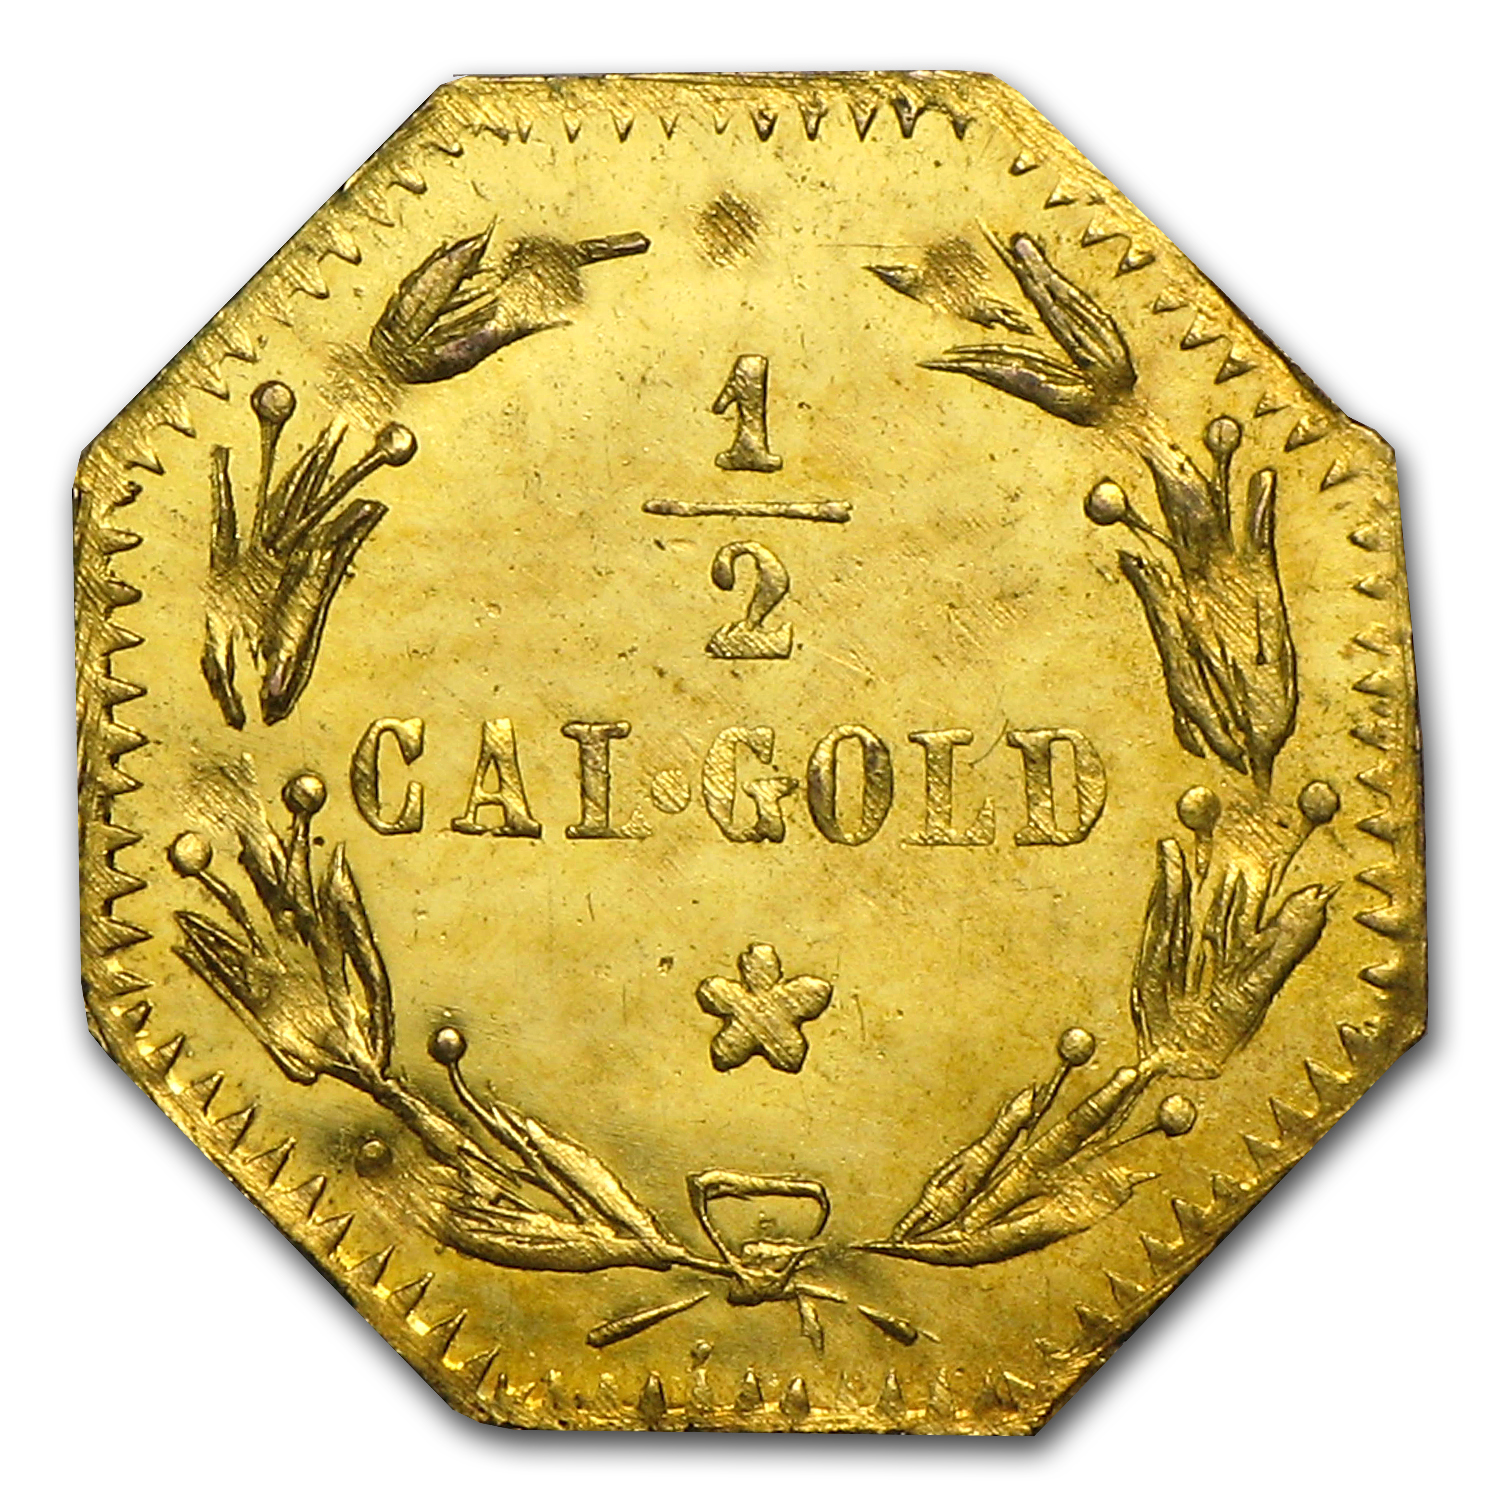 1875 Indian Octagonal Gold Token MS-63 (Proof-Like)